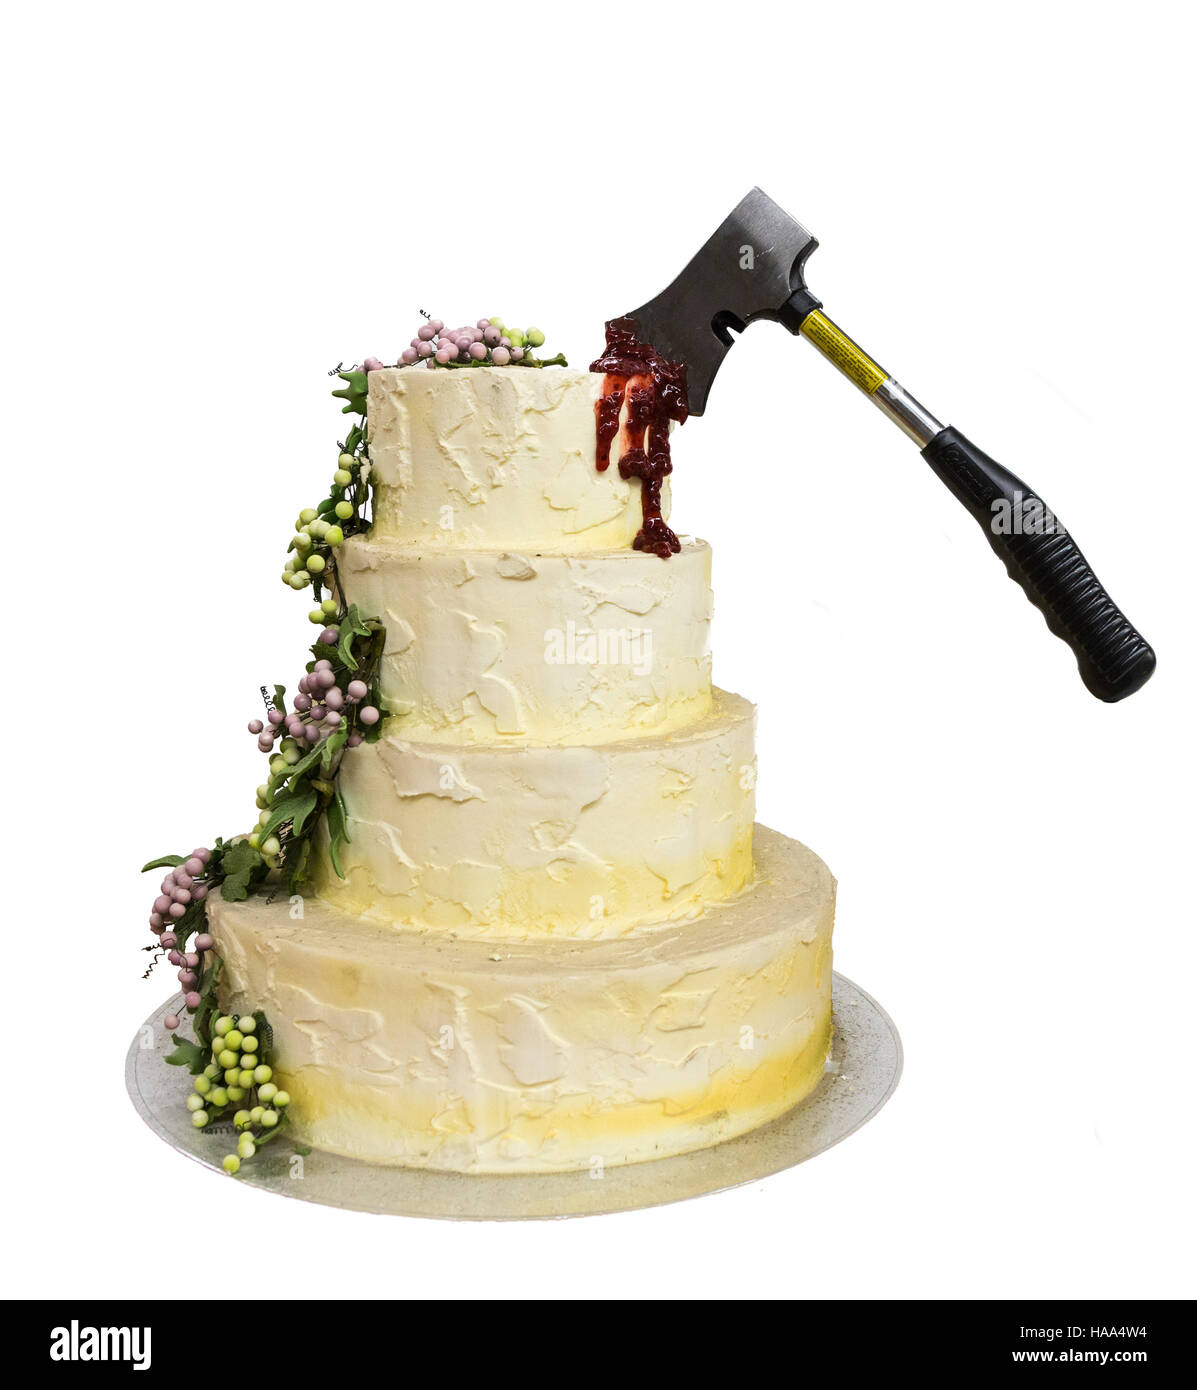 Bride And Groom Cake Topper Stock Photos & Bride And Groom Cake ...